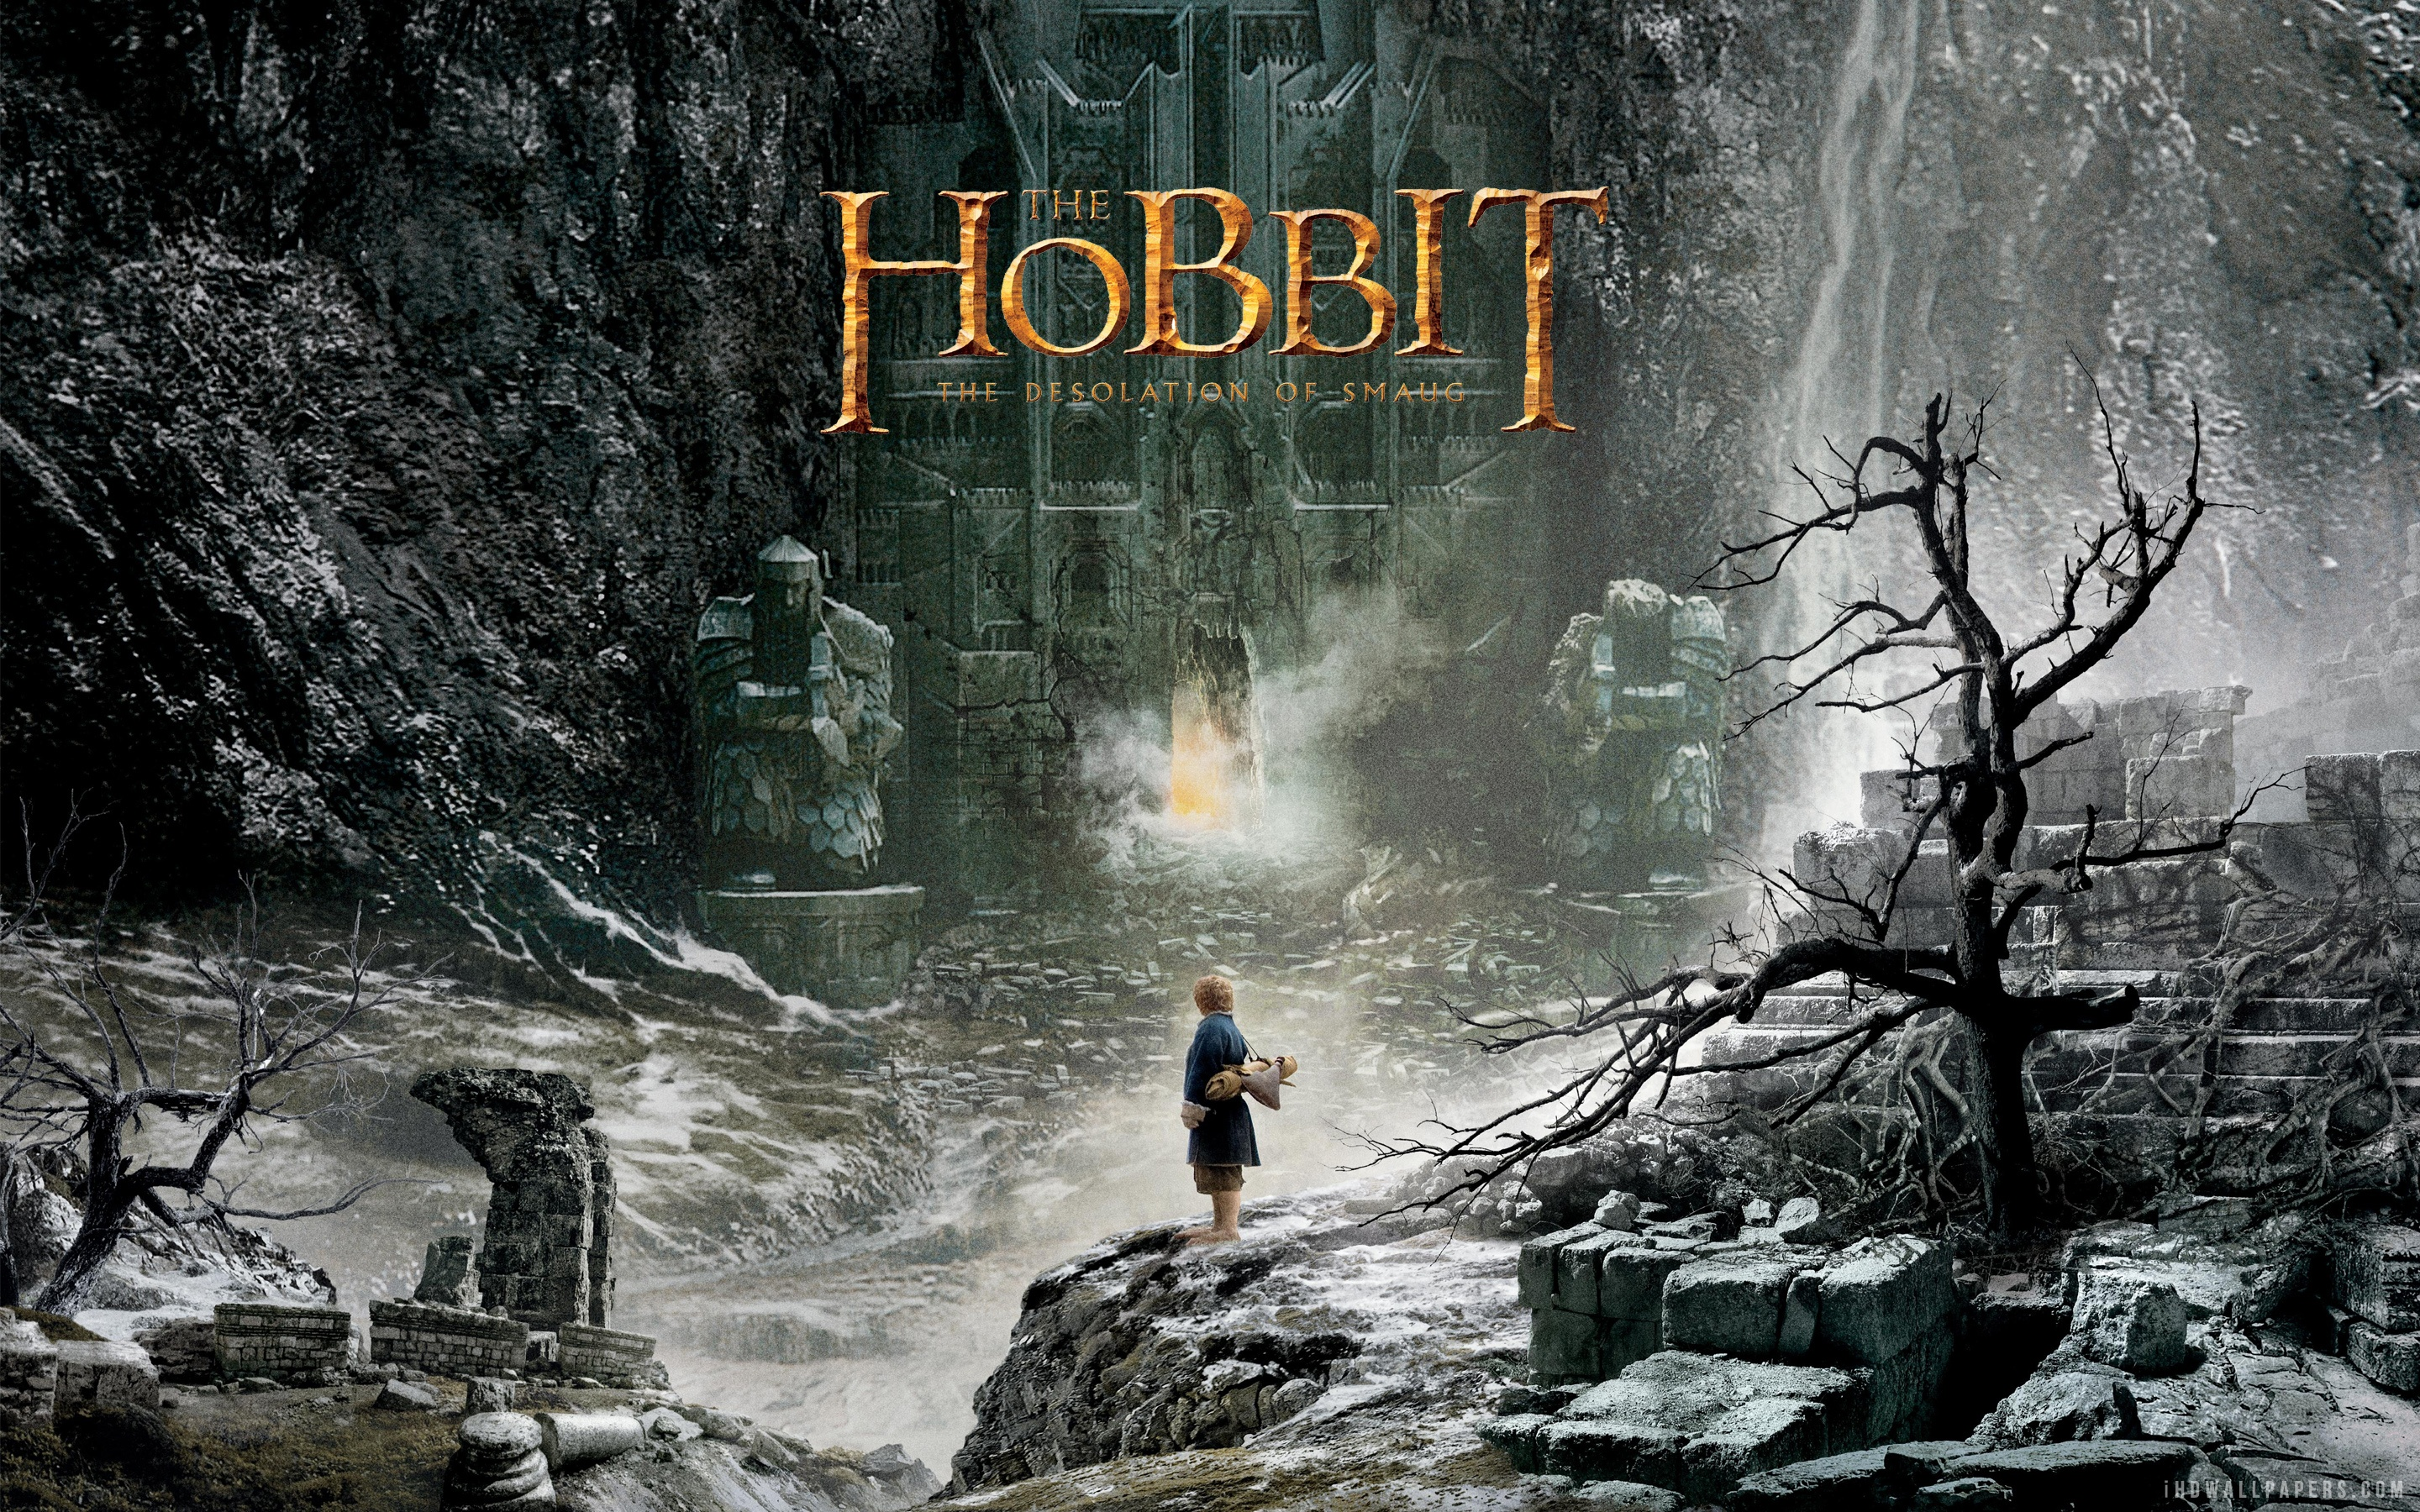 The Hobbit Desolation Of Smaug Wallpaper High Resolution 2880x1800